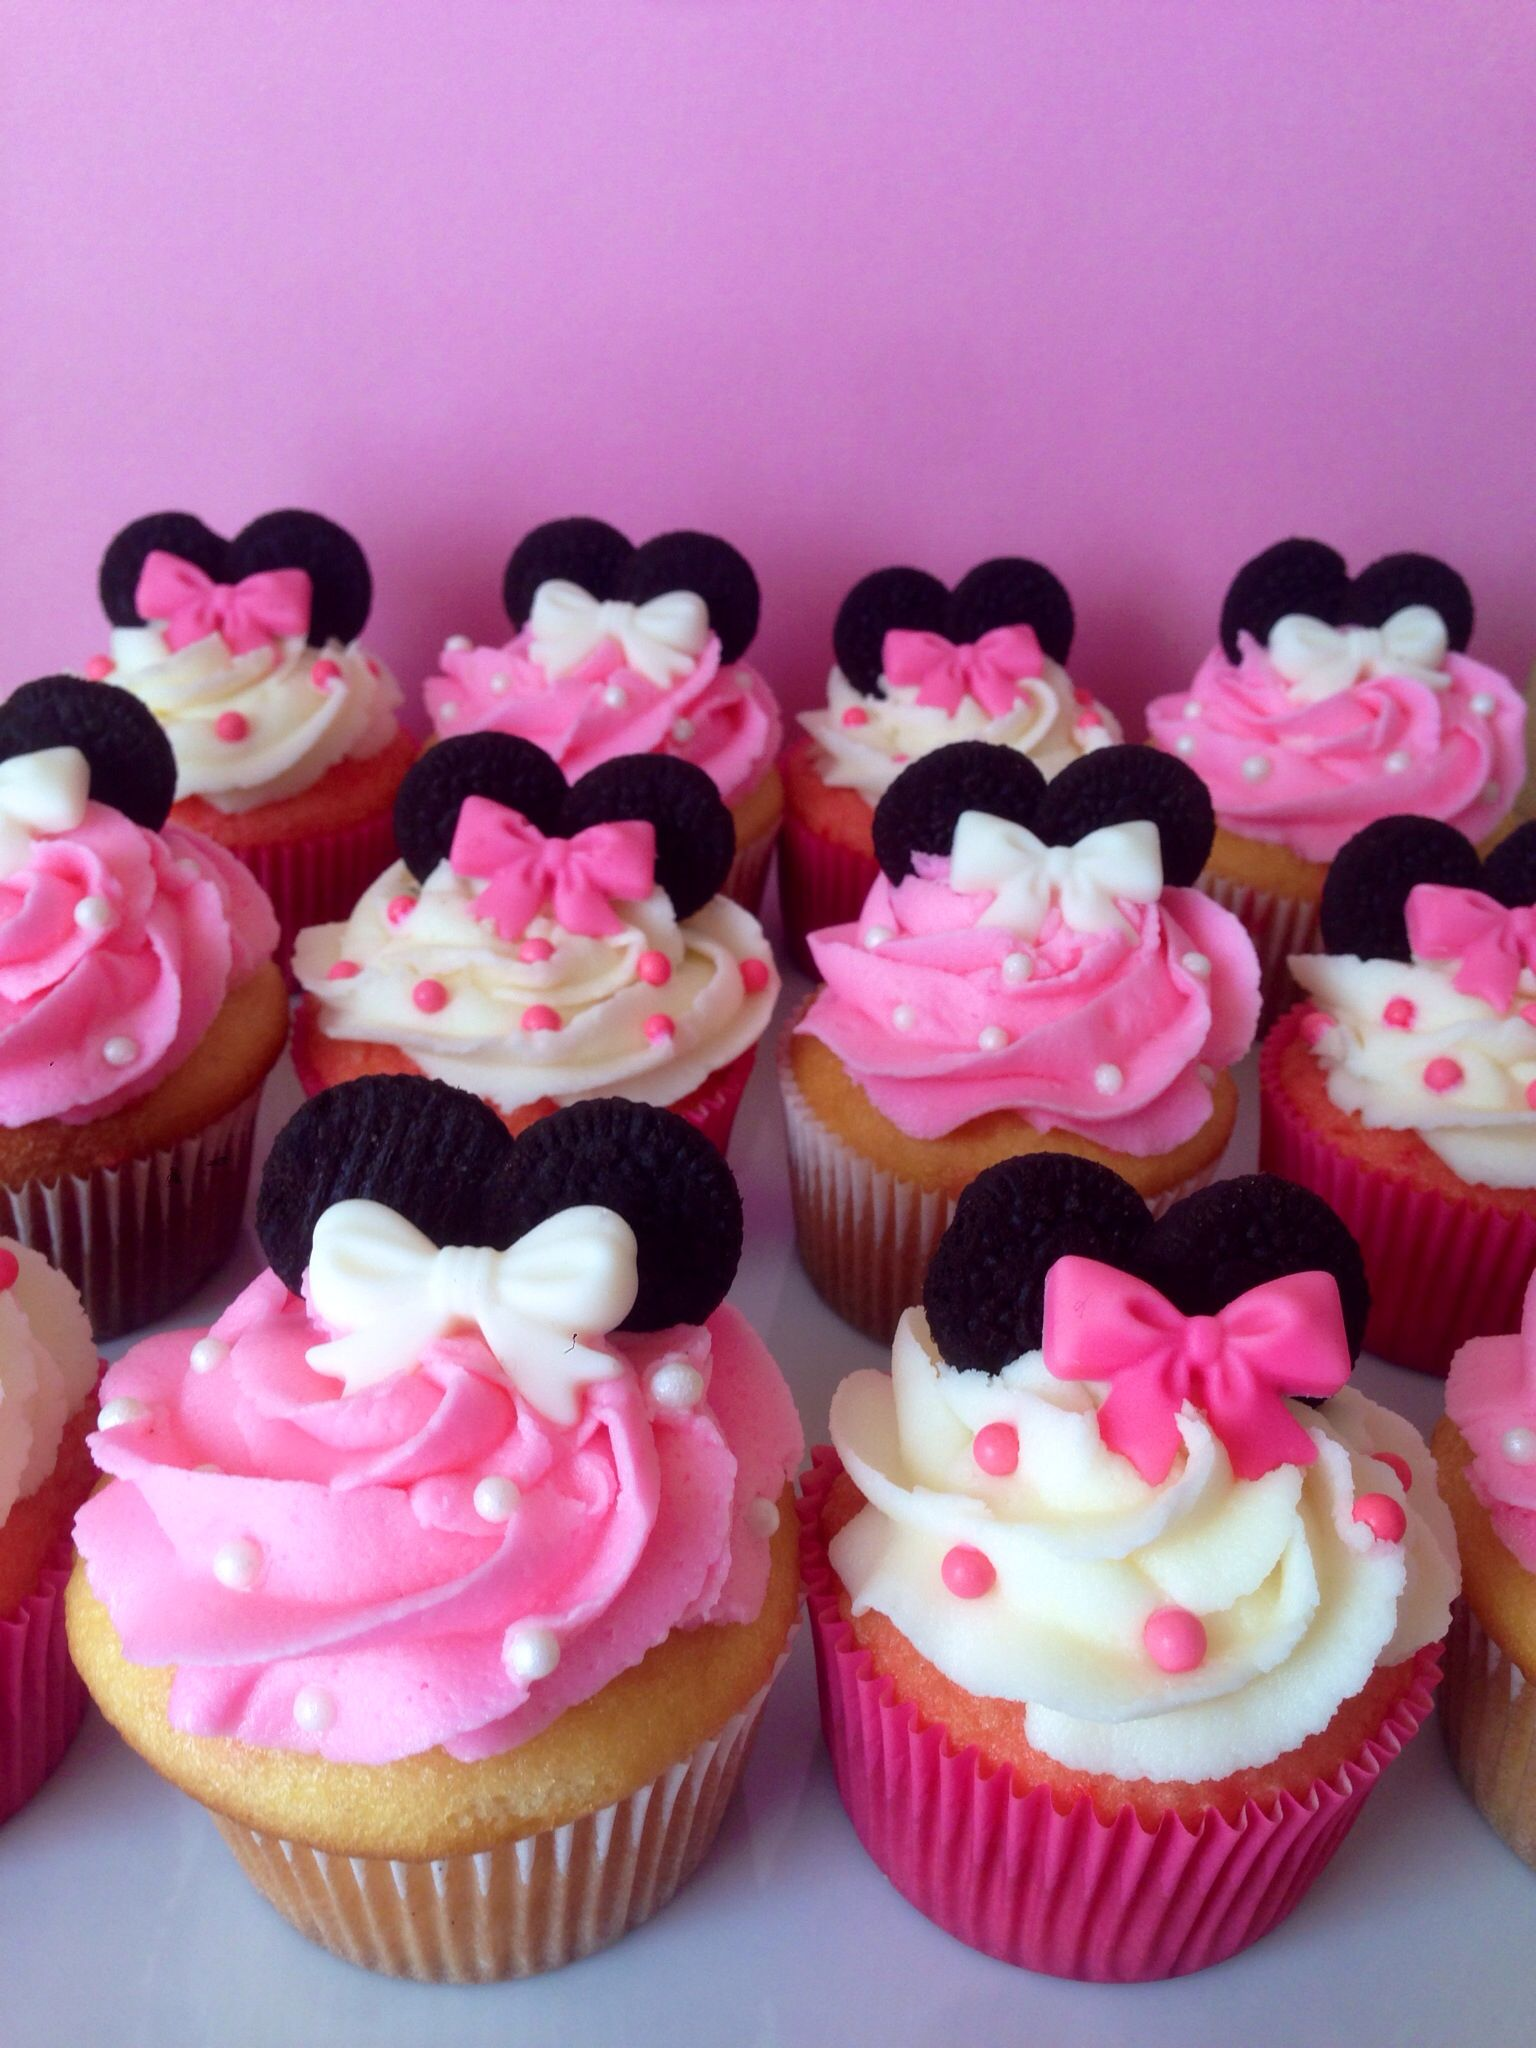 Get Free Printable Customized Minnie Mouse Baby Shower Invitation ...